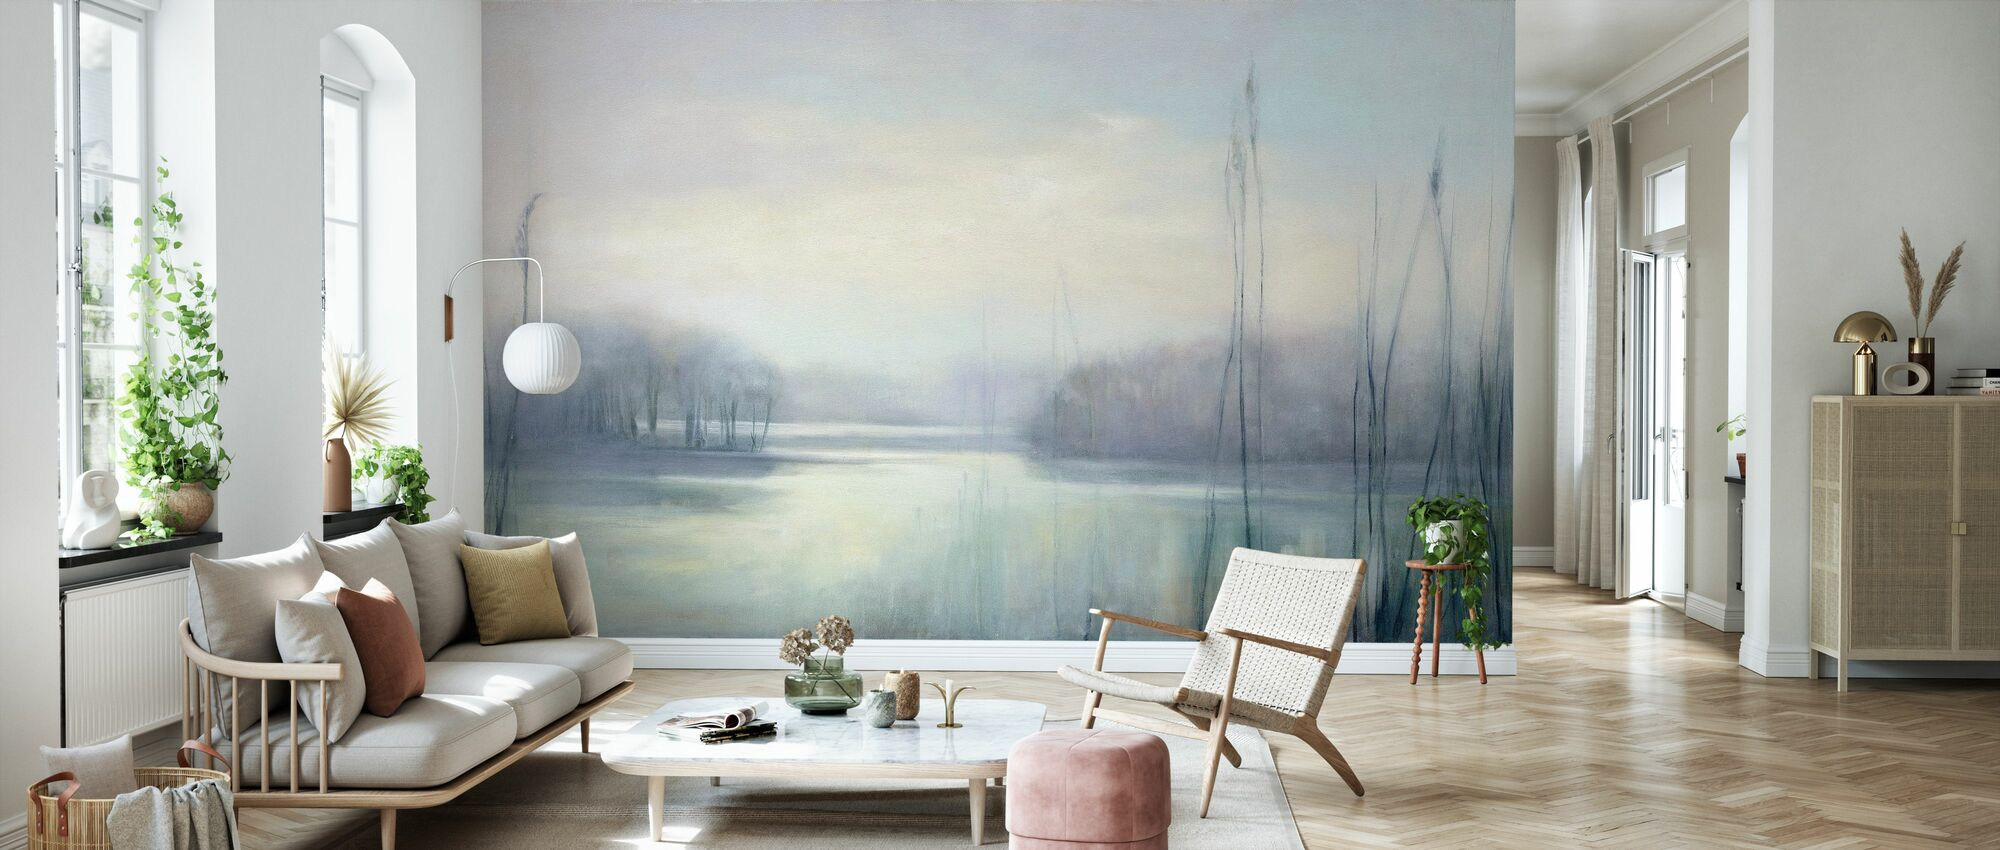 Misty Memories - Wallpaper - Living Room